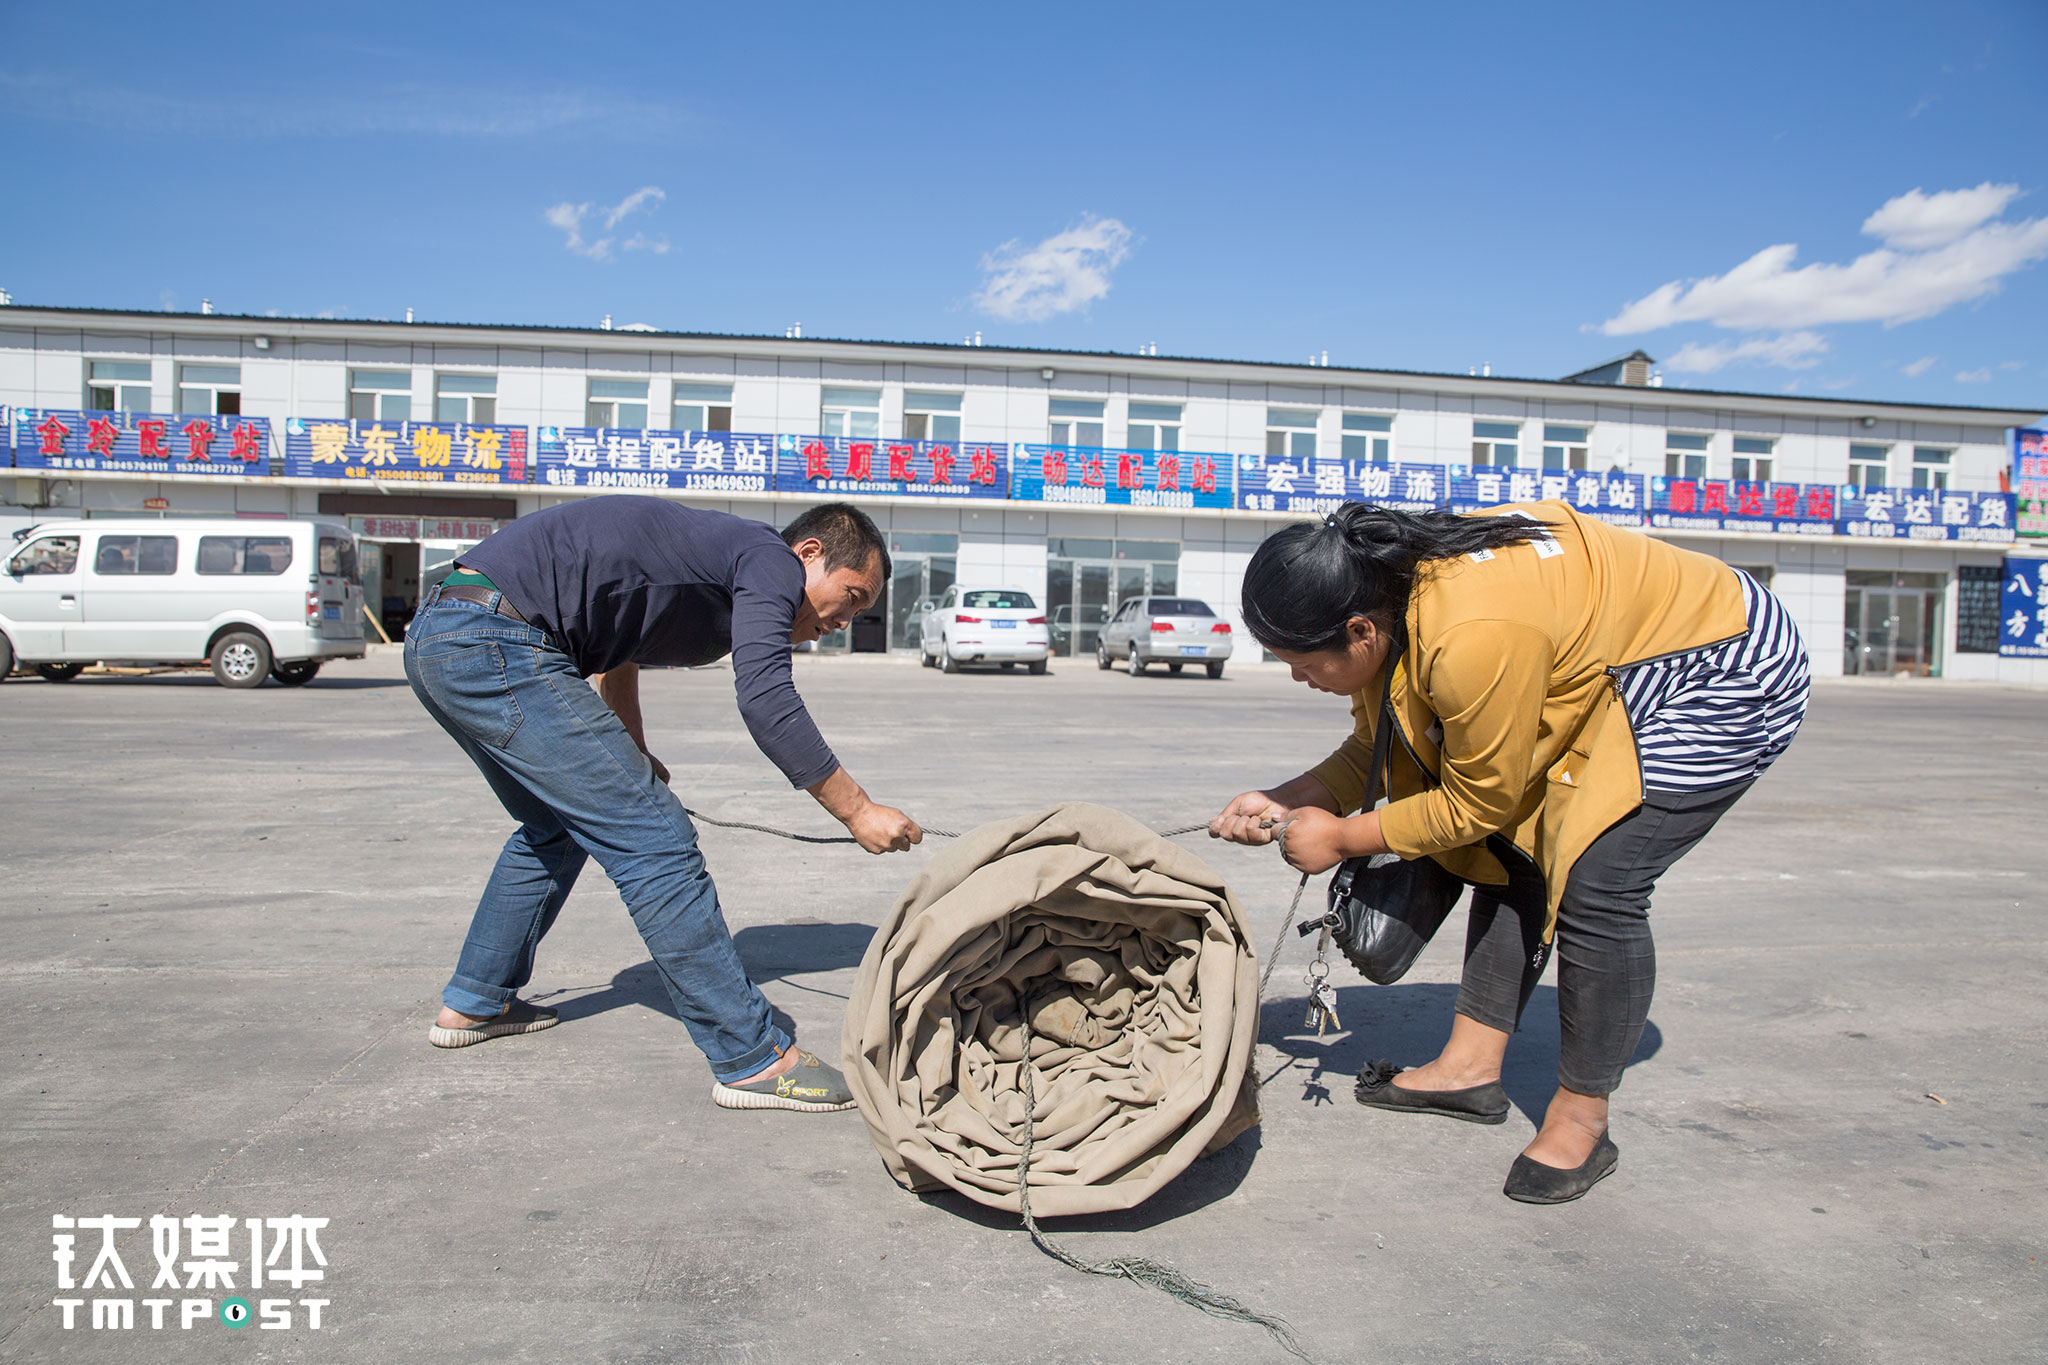 3:00 pm, 16th. They finally arrived their final destination Manzhouli International Road Logistics Park. The couple put back the canvas before unloading the shipments in the park.